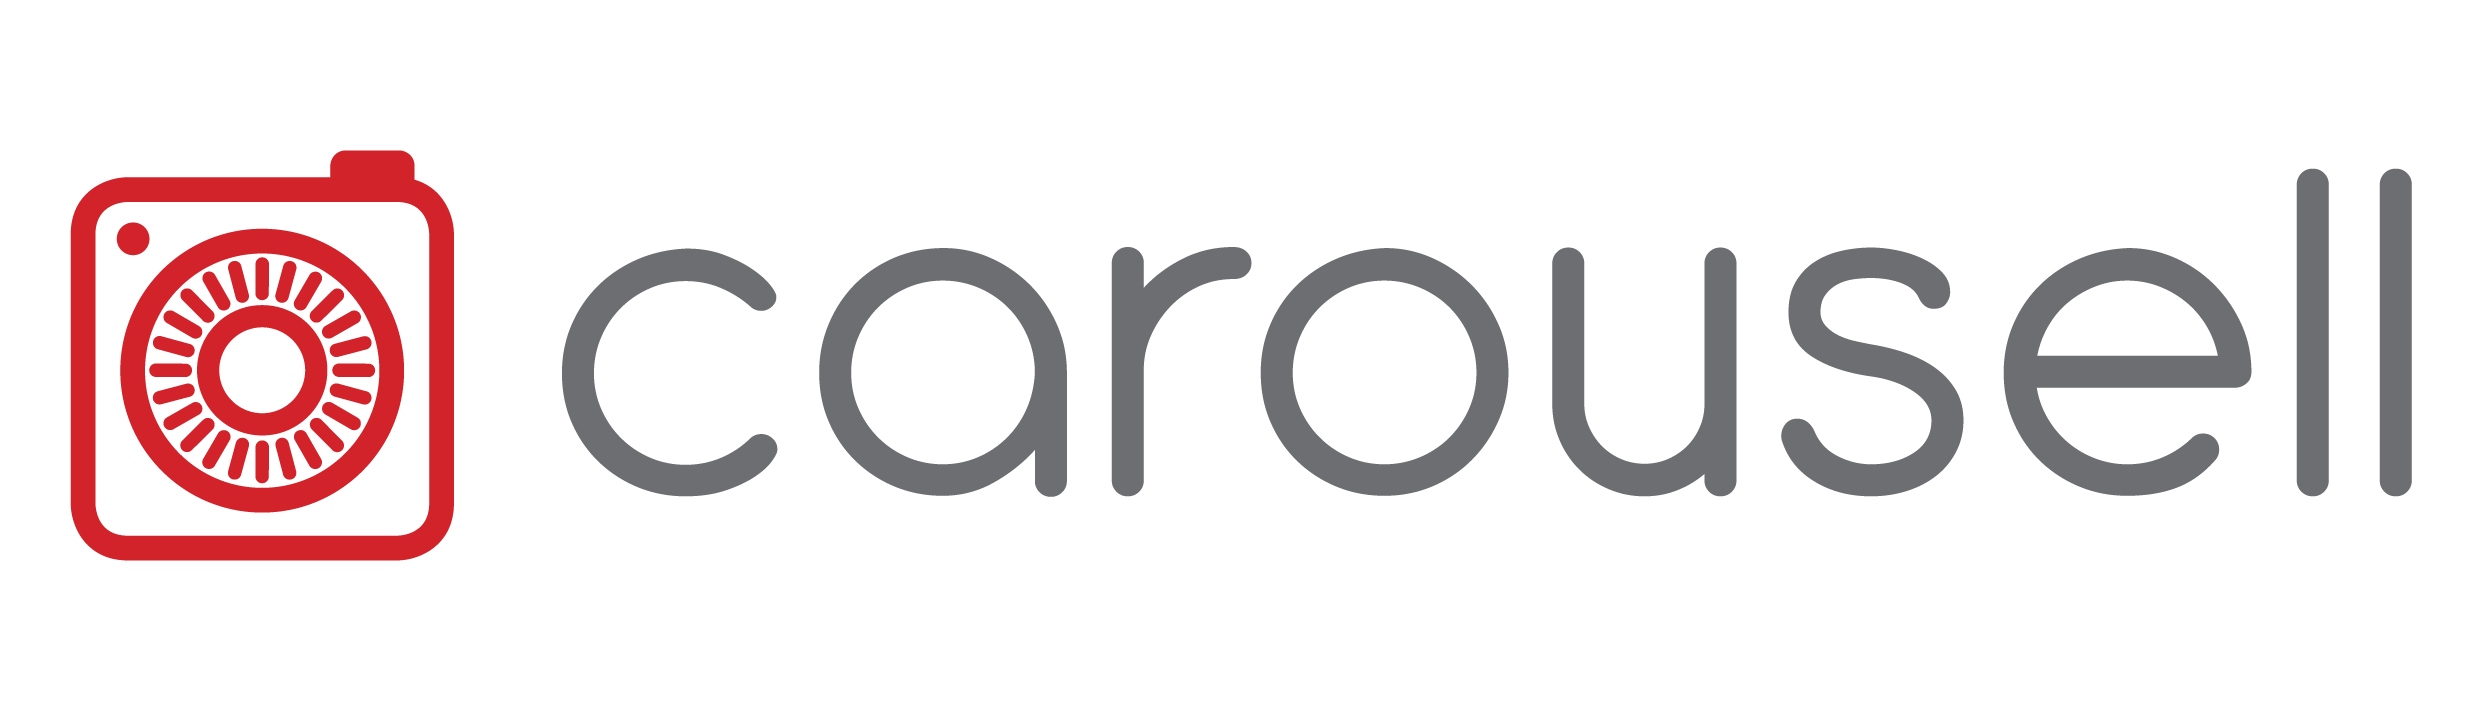 Carousell Png - Carousell png 2 » PNG Image